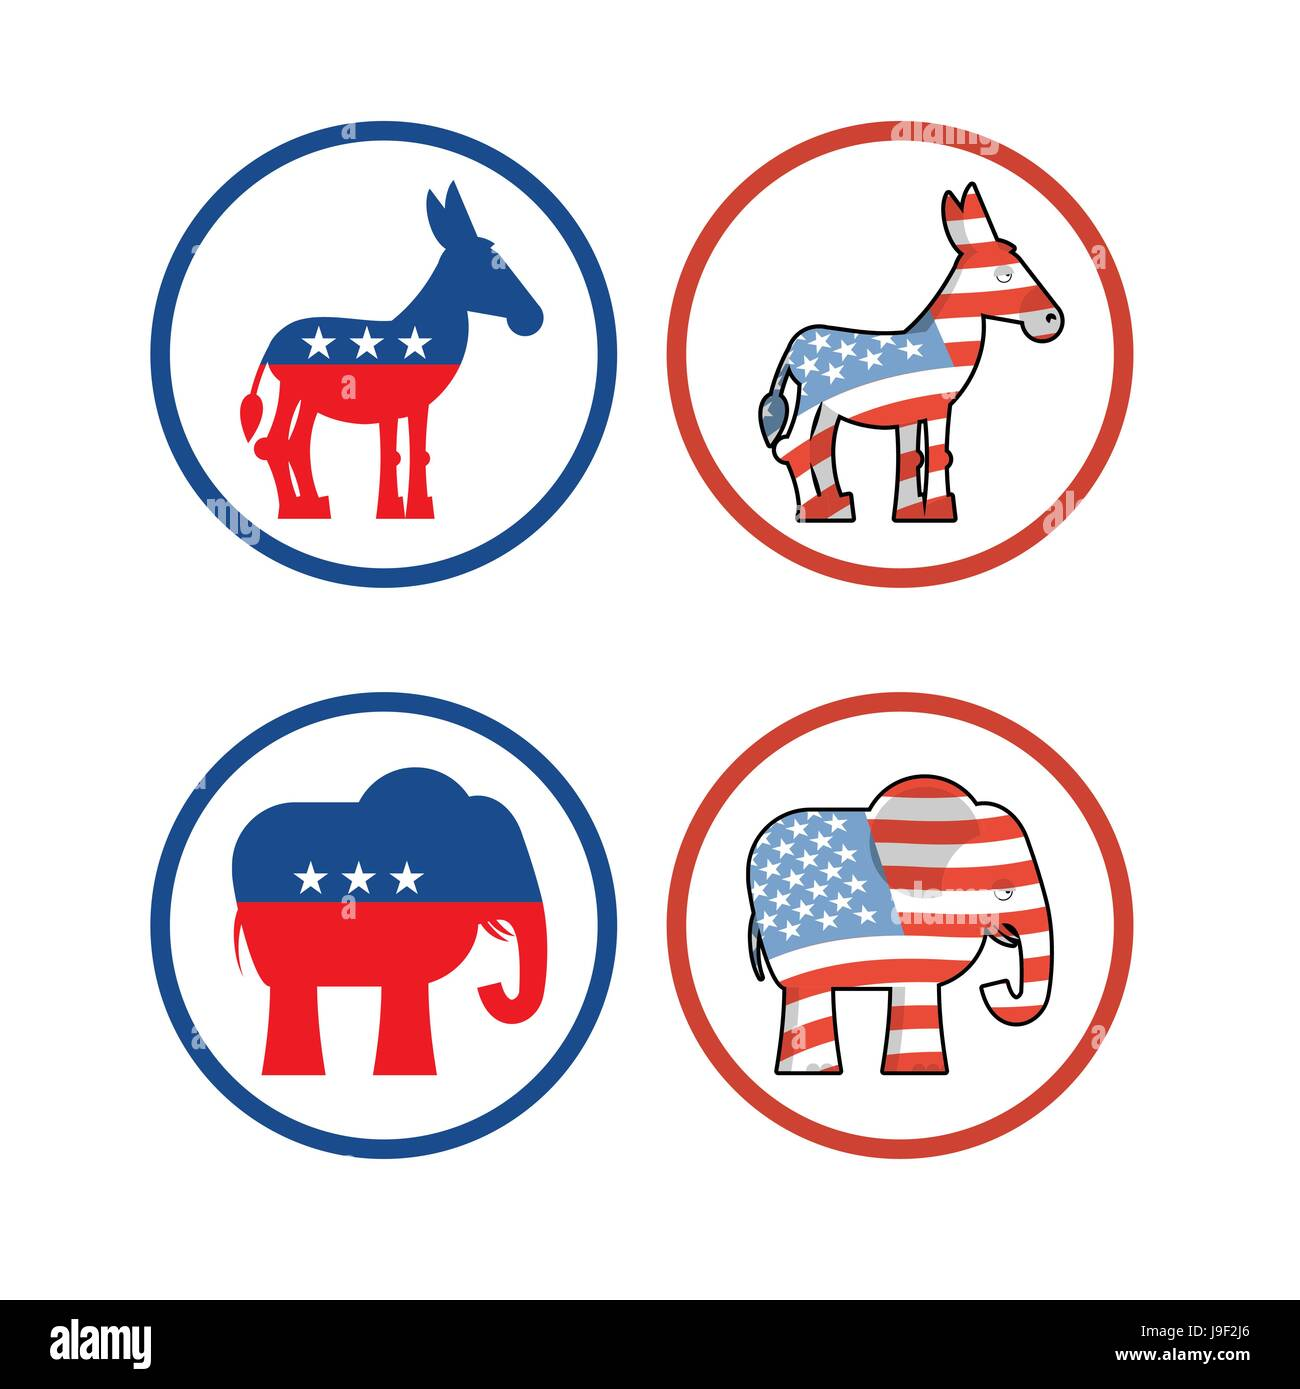 Democratic Donkey And Republican Elephant Symbols Of Political Stock